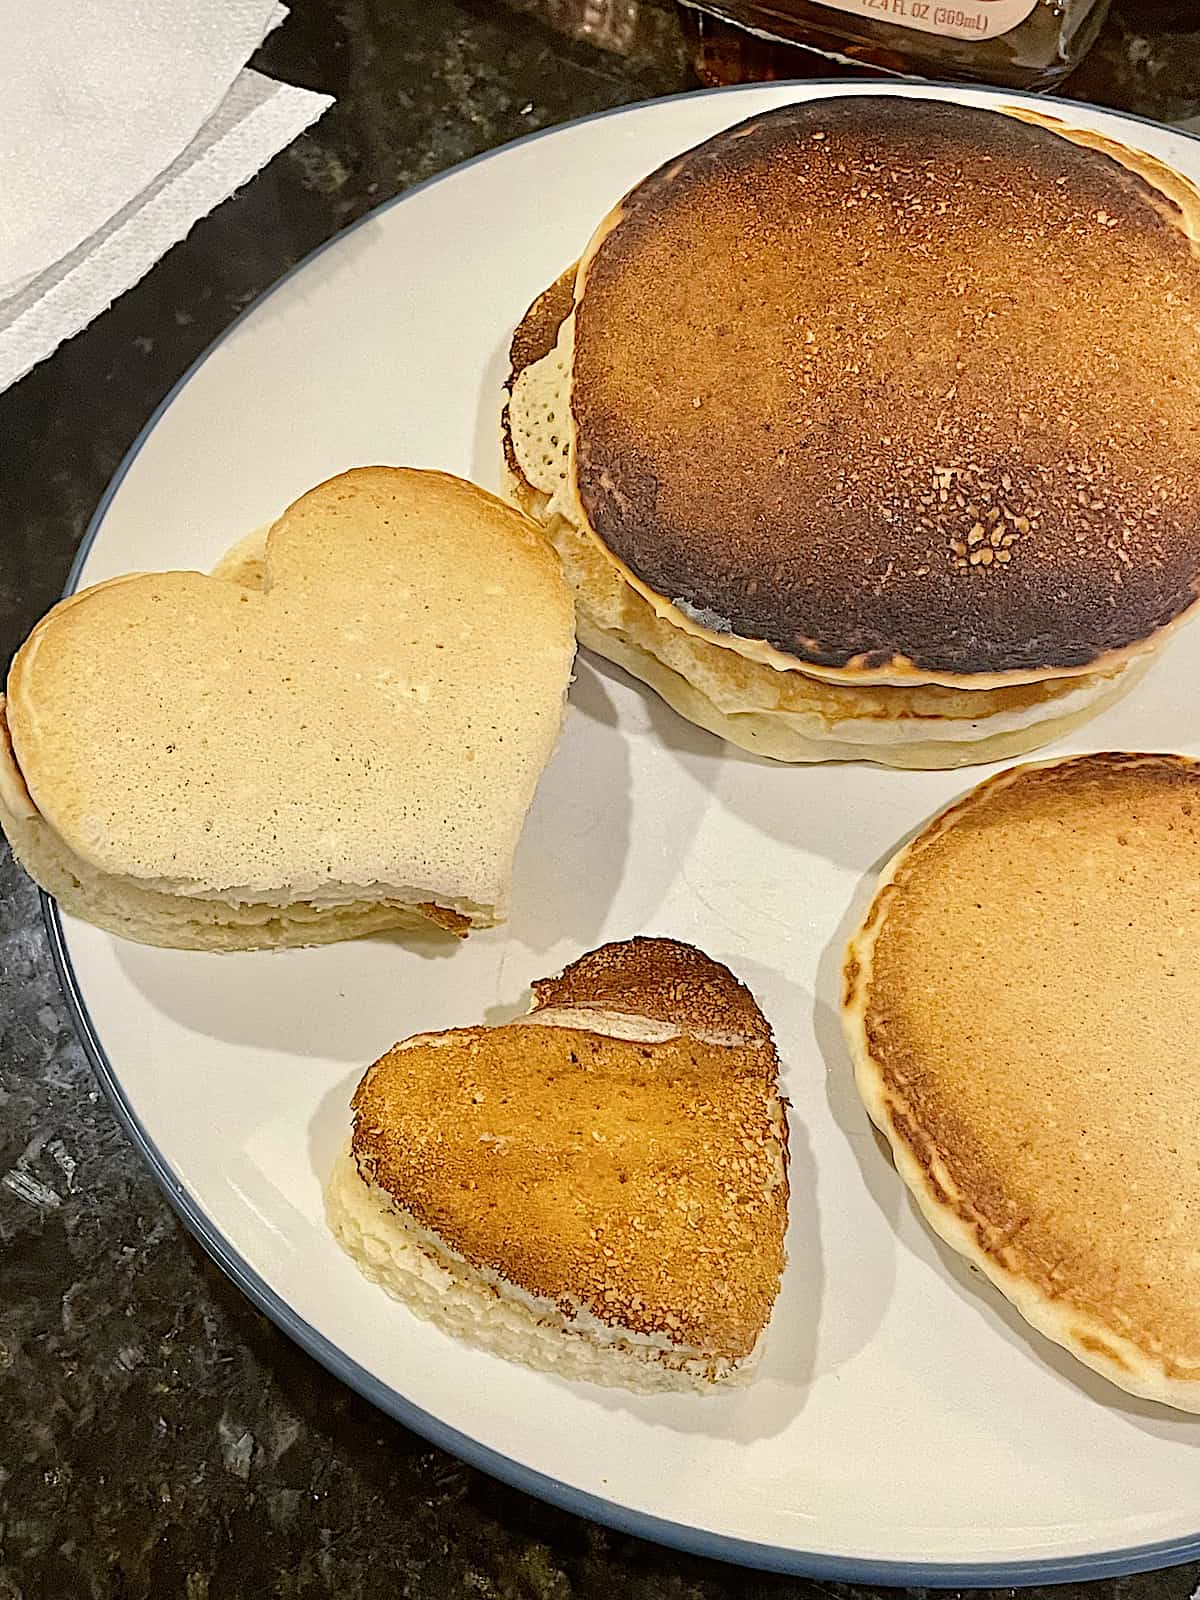 heart shaped pancakes on a plate